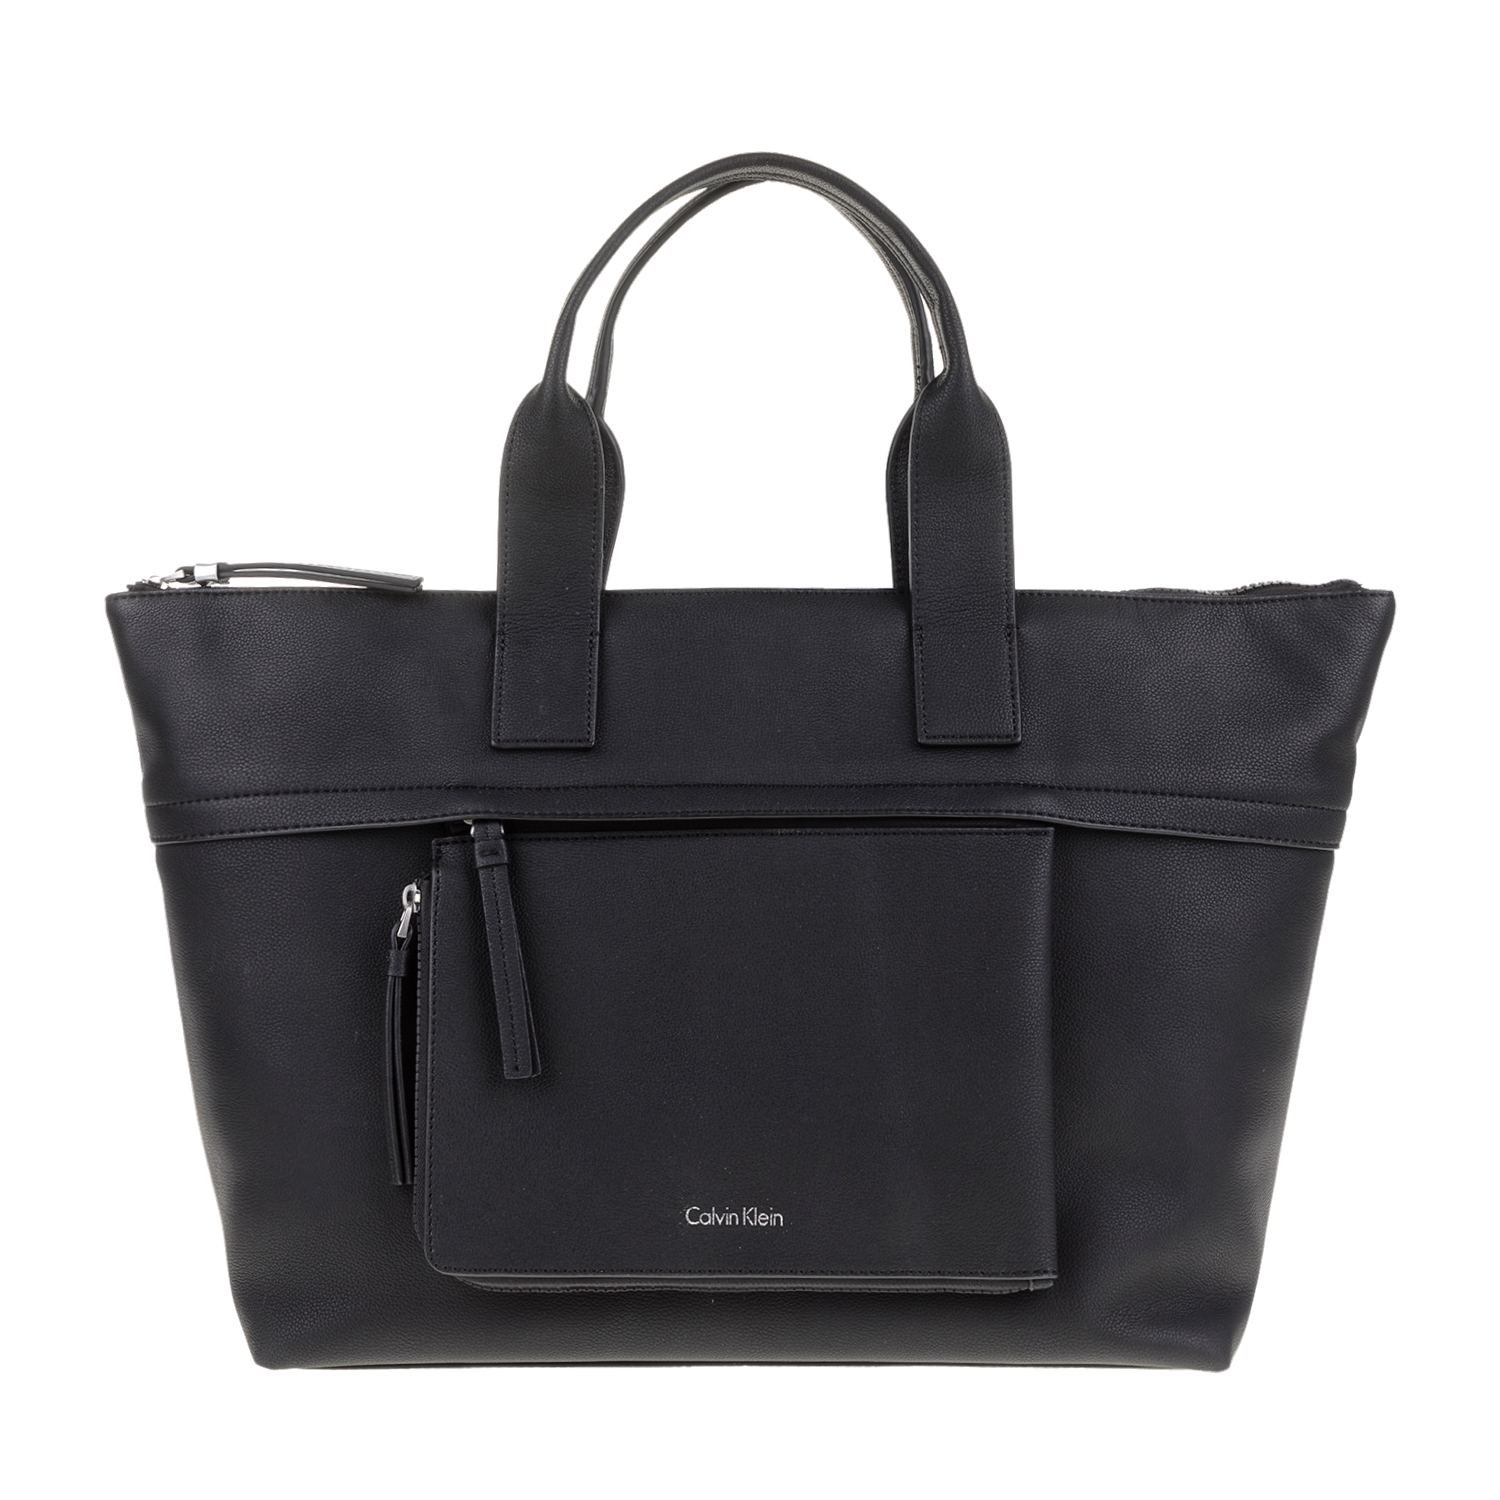 5ad60366f5 CALVIN KLEIN JEANS - Γυναικεία τσάντα χειρός CH4RLY LARGE TOTE μαύρη ...